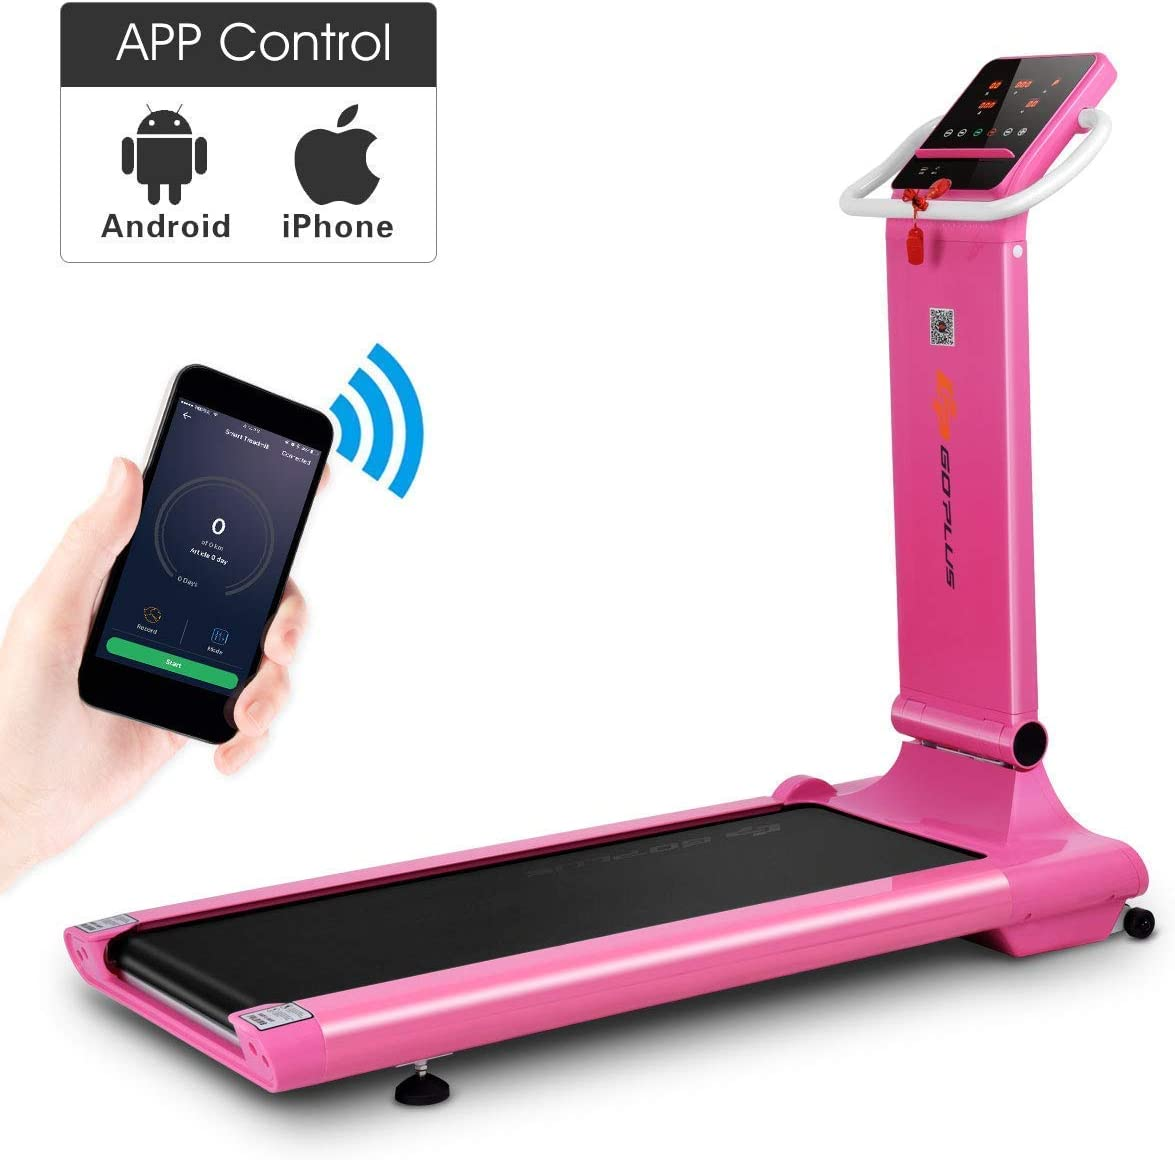 Goplus Electric Folding Treadmill, Free-Install Design, with APP Control and Touch Screen